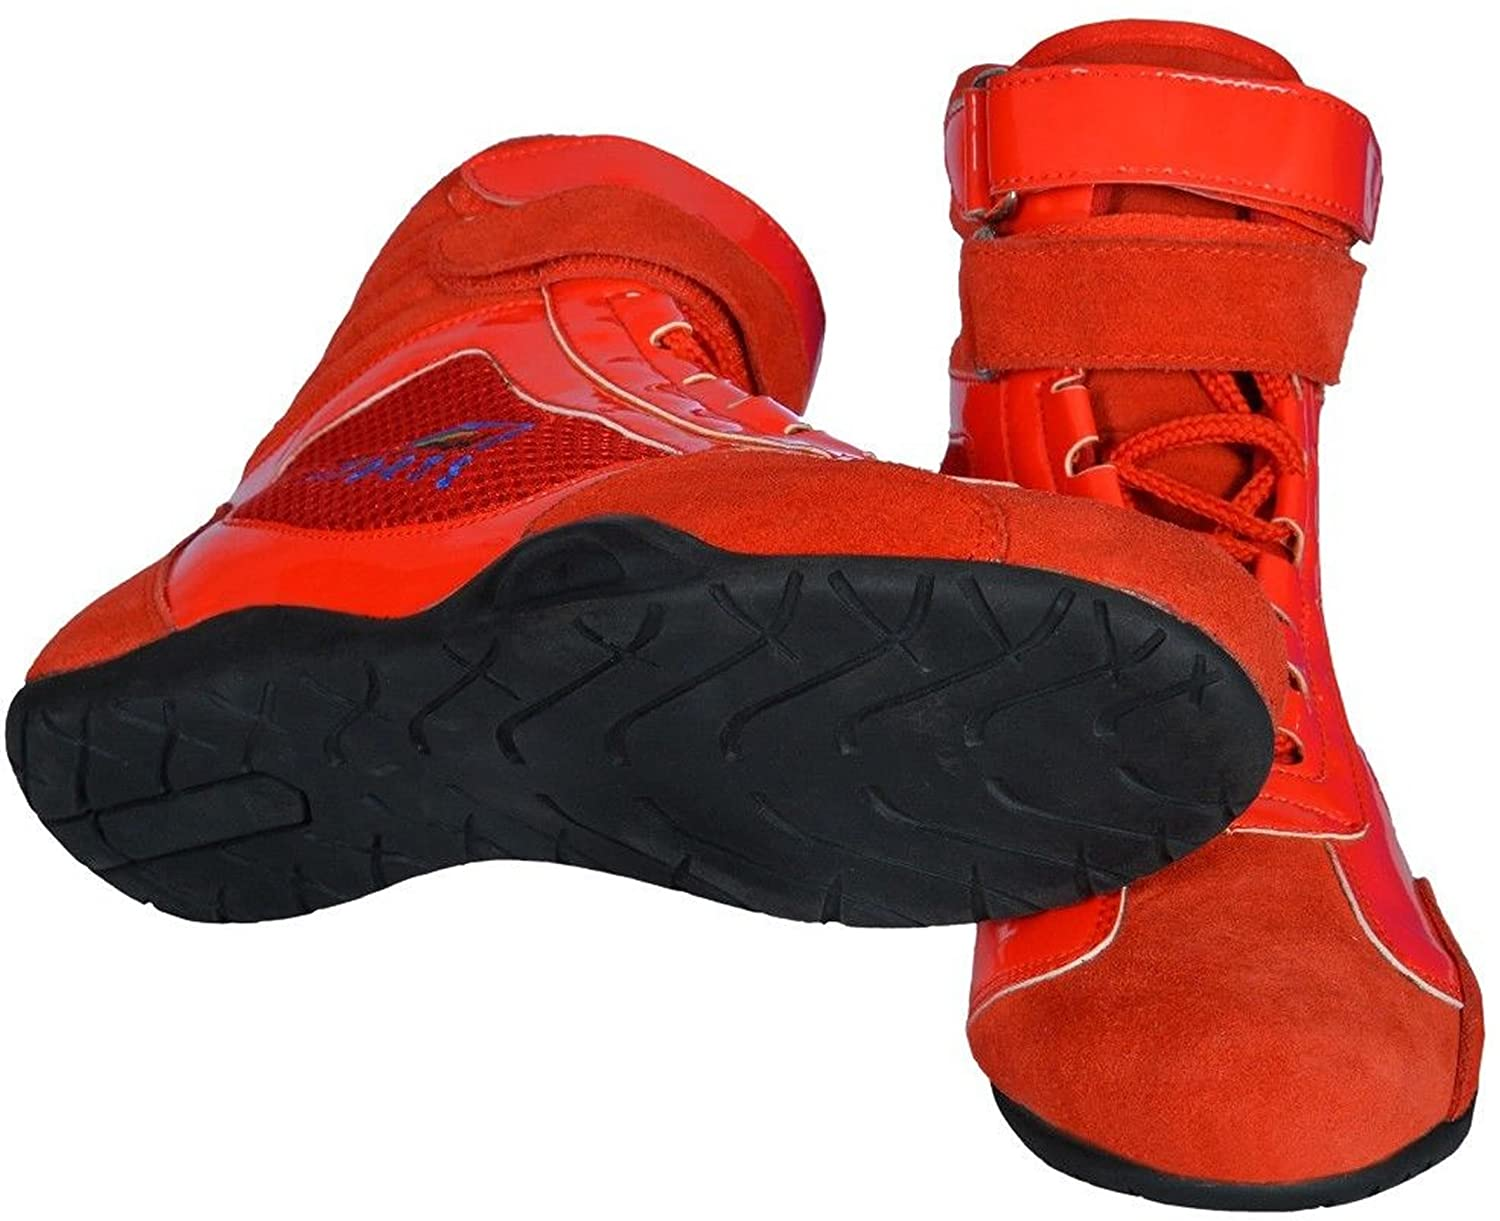 Red, UK 4//EU 37 Anti Slip Oil /& Fuel Resistant Rubber Sole Boots PM Sports Kids Junior Karting Race Rally Boots with Shiny Artificial Leather /& Suede Mix